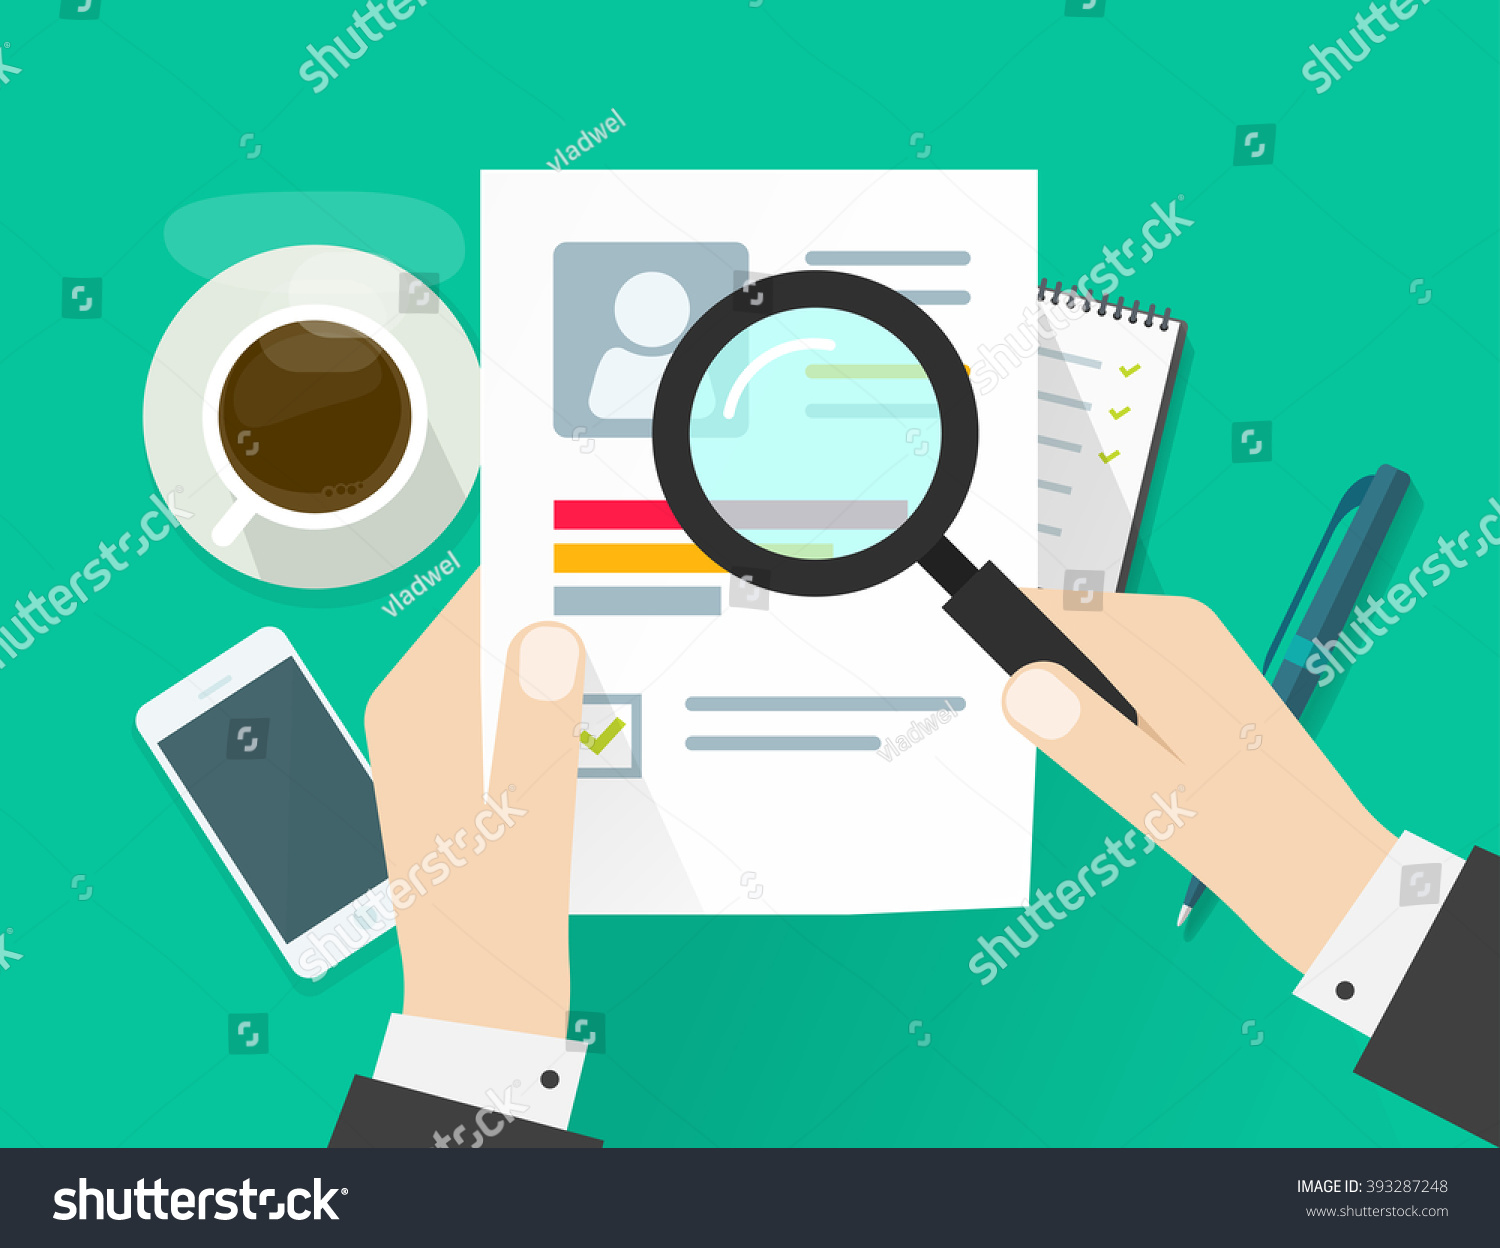 cv application paper sheet business man stock vector 393287248